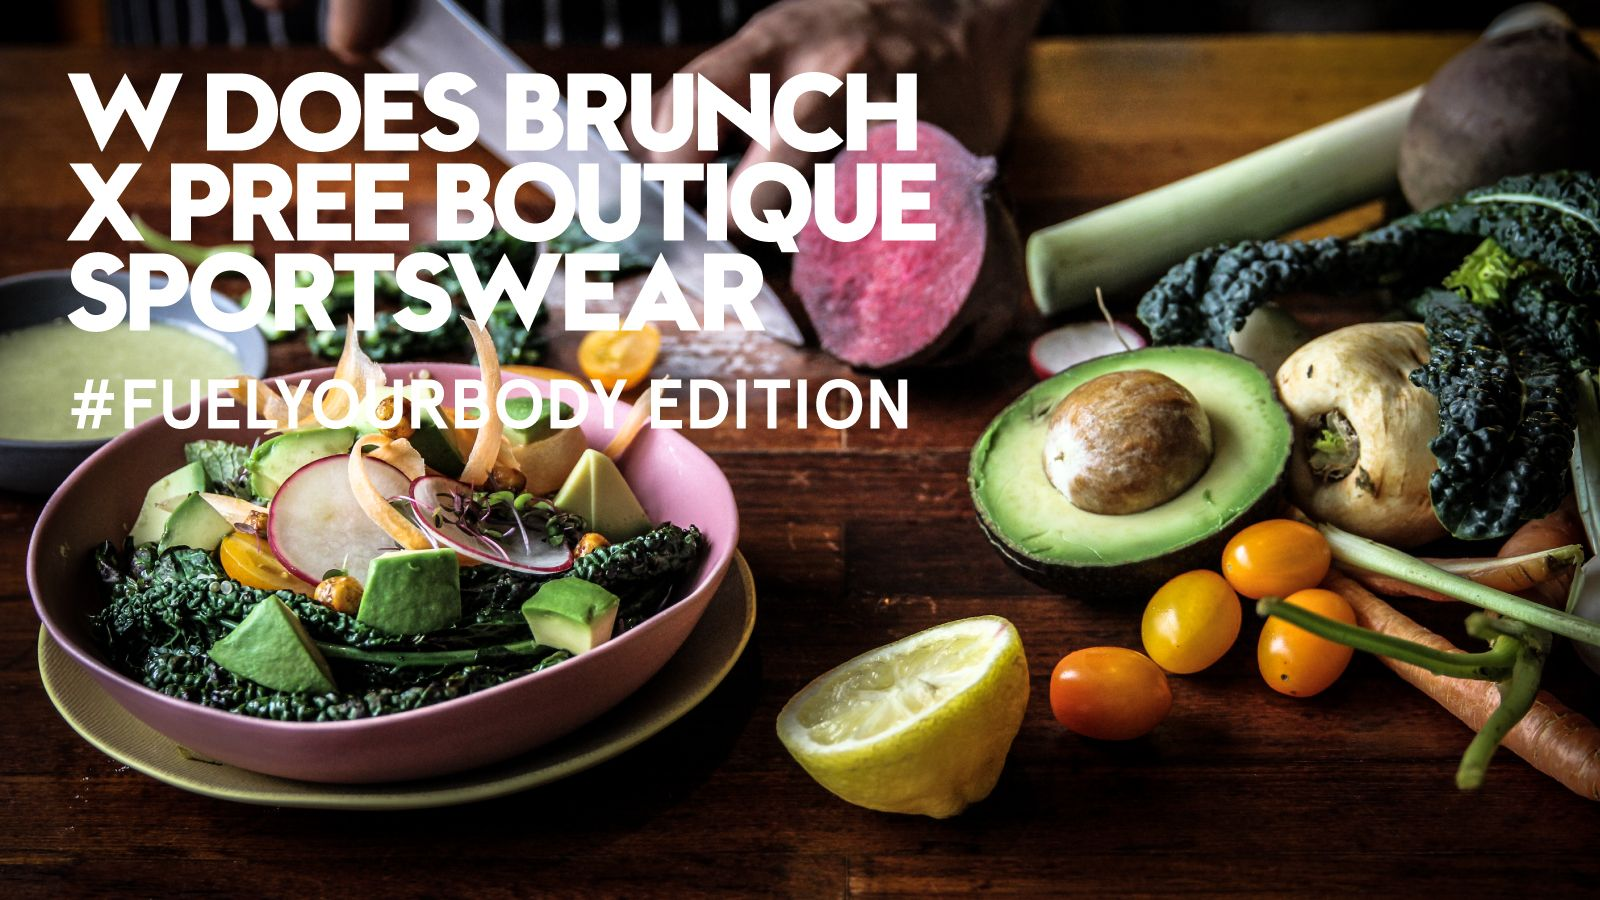 W DOES BRUNCH X PREE BOUTIQUE SPORTSWEAR